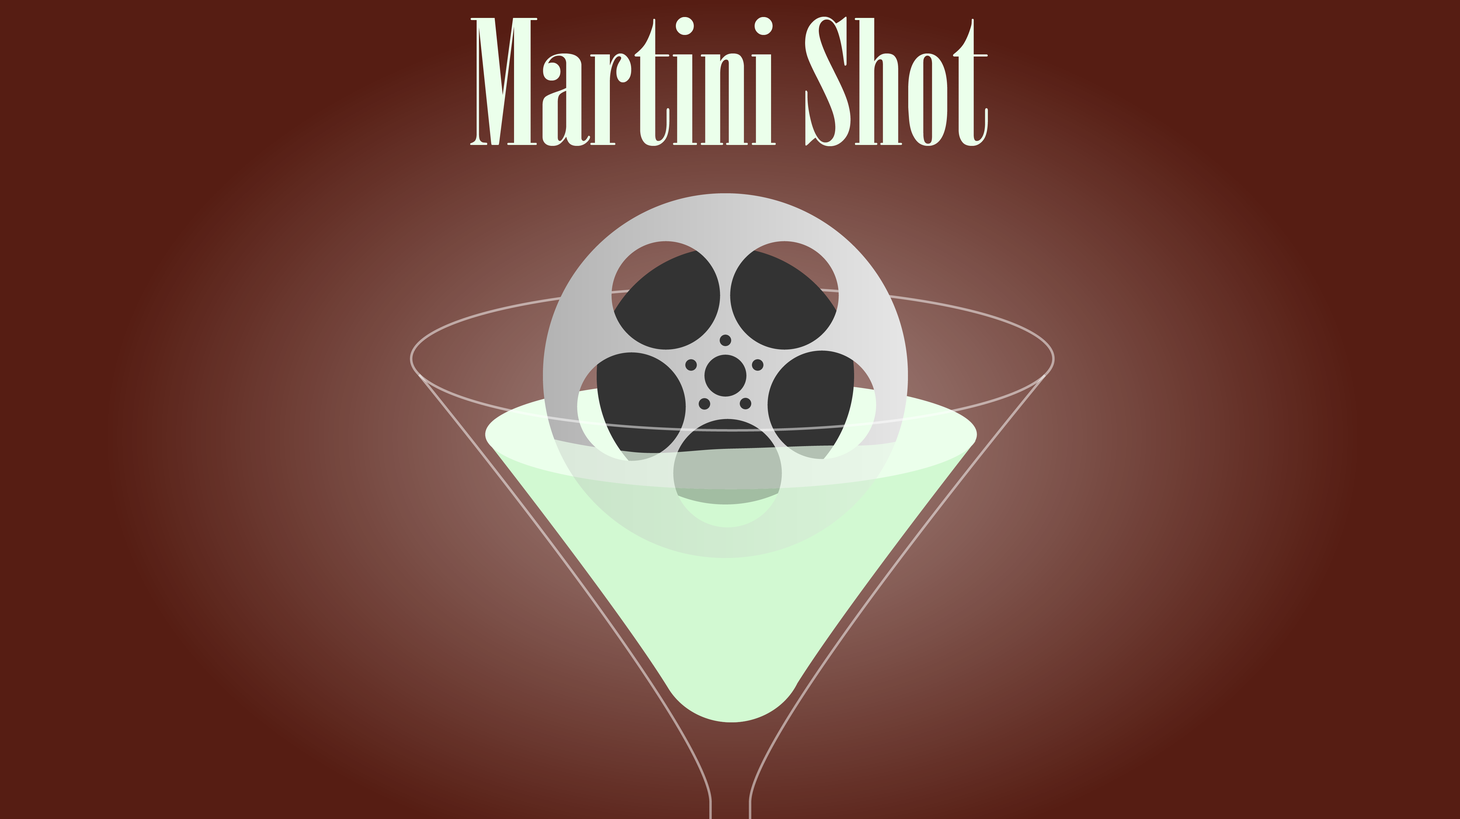 This is Rob Long, and on today's Martini Shot I discuss the 1938 discovery by a psychologist that people are at their most emotionally vulnerable when they're eating, which is why everyone in show business is always trying to take you to lunch.